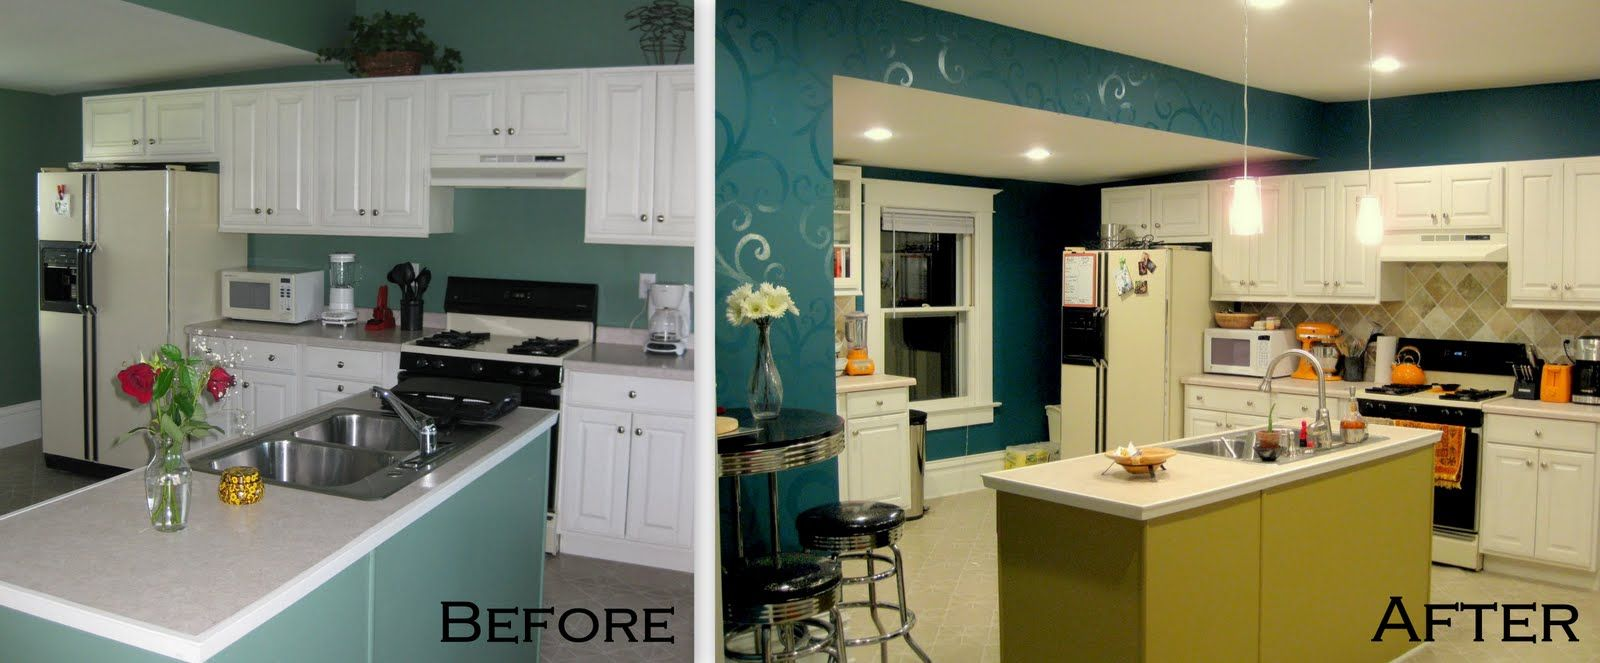 Budget Kitchen Updates! {Accent Wall and Faux Painted Backsplash!} - Sawdust and Embryos